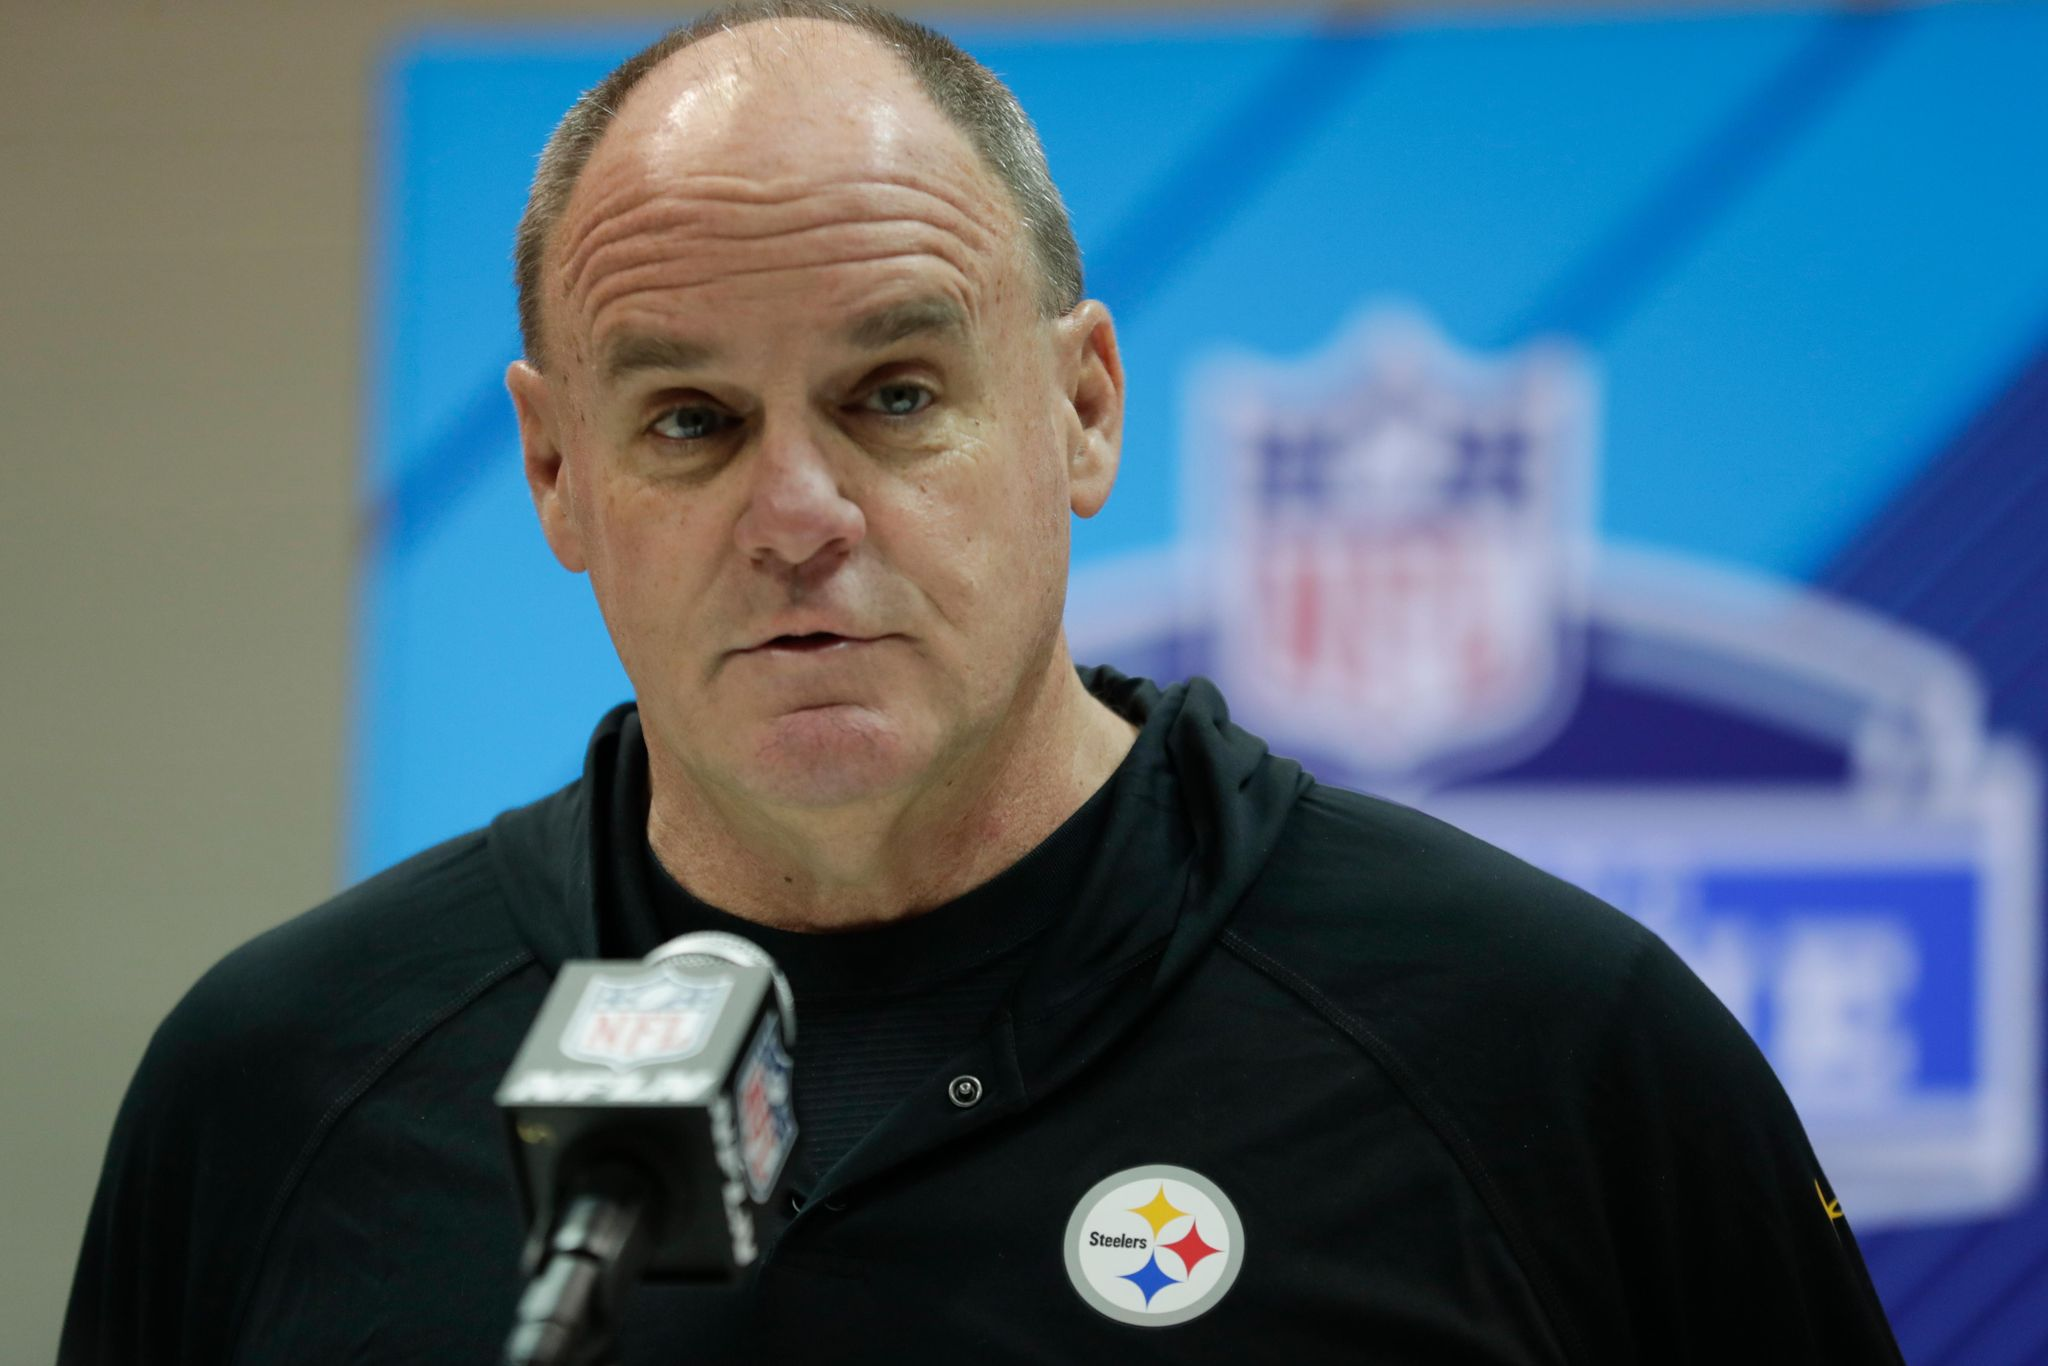 Draft_steelers_preview_football_82382_s2048x1366